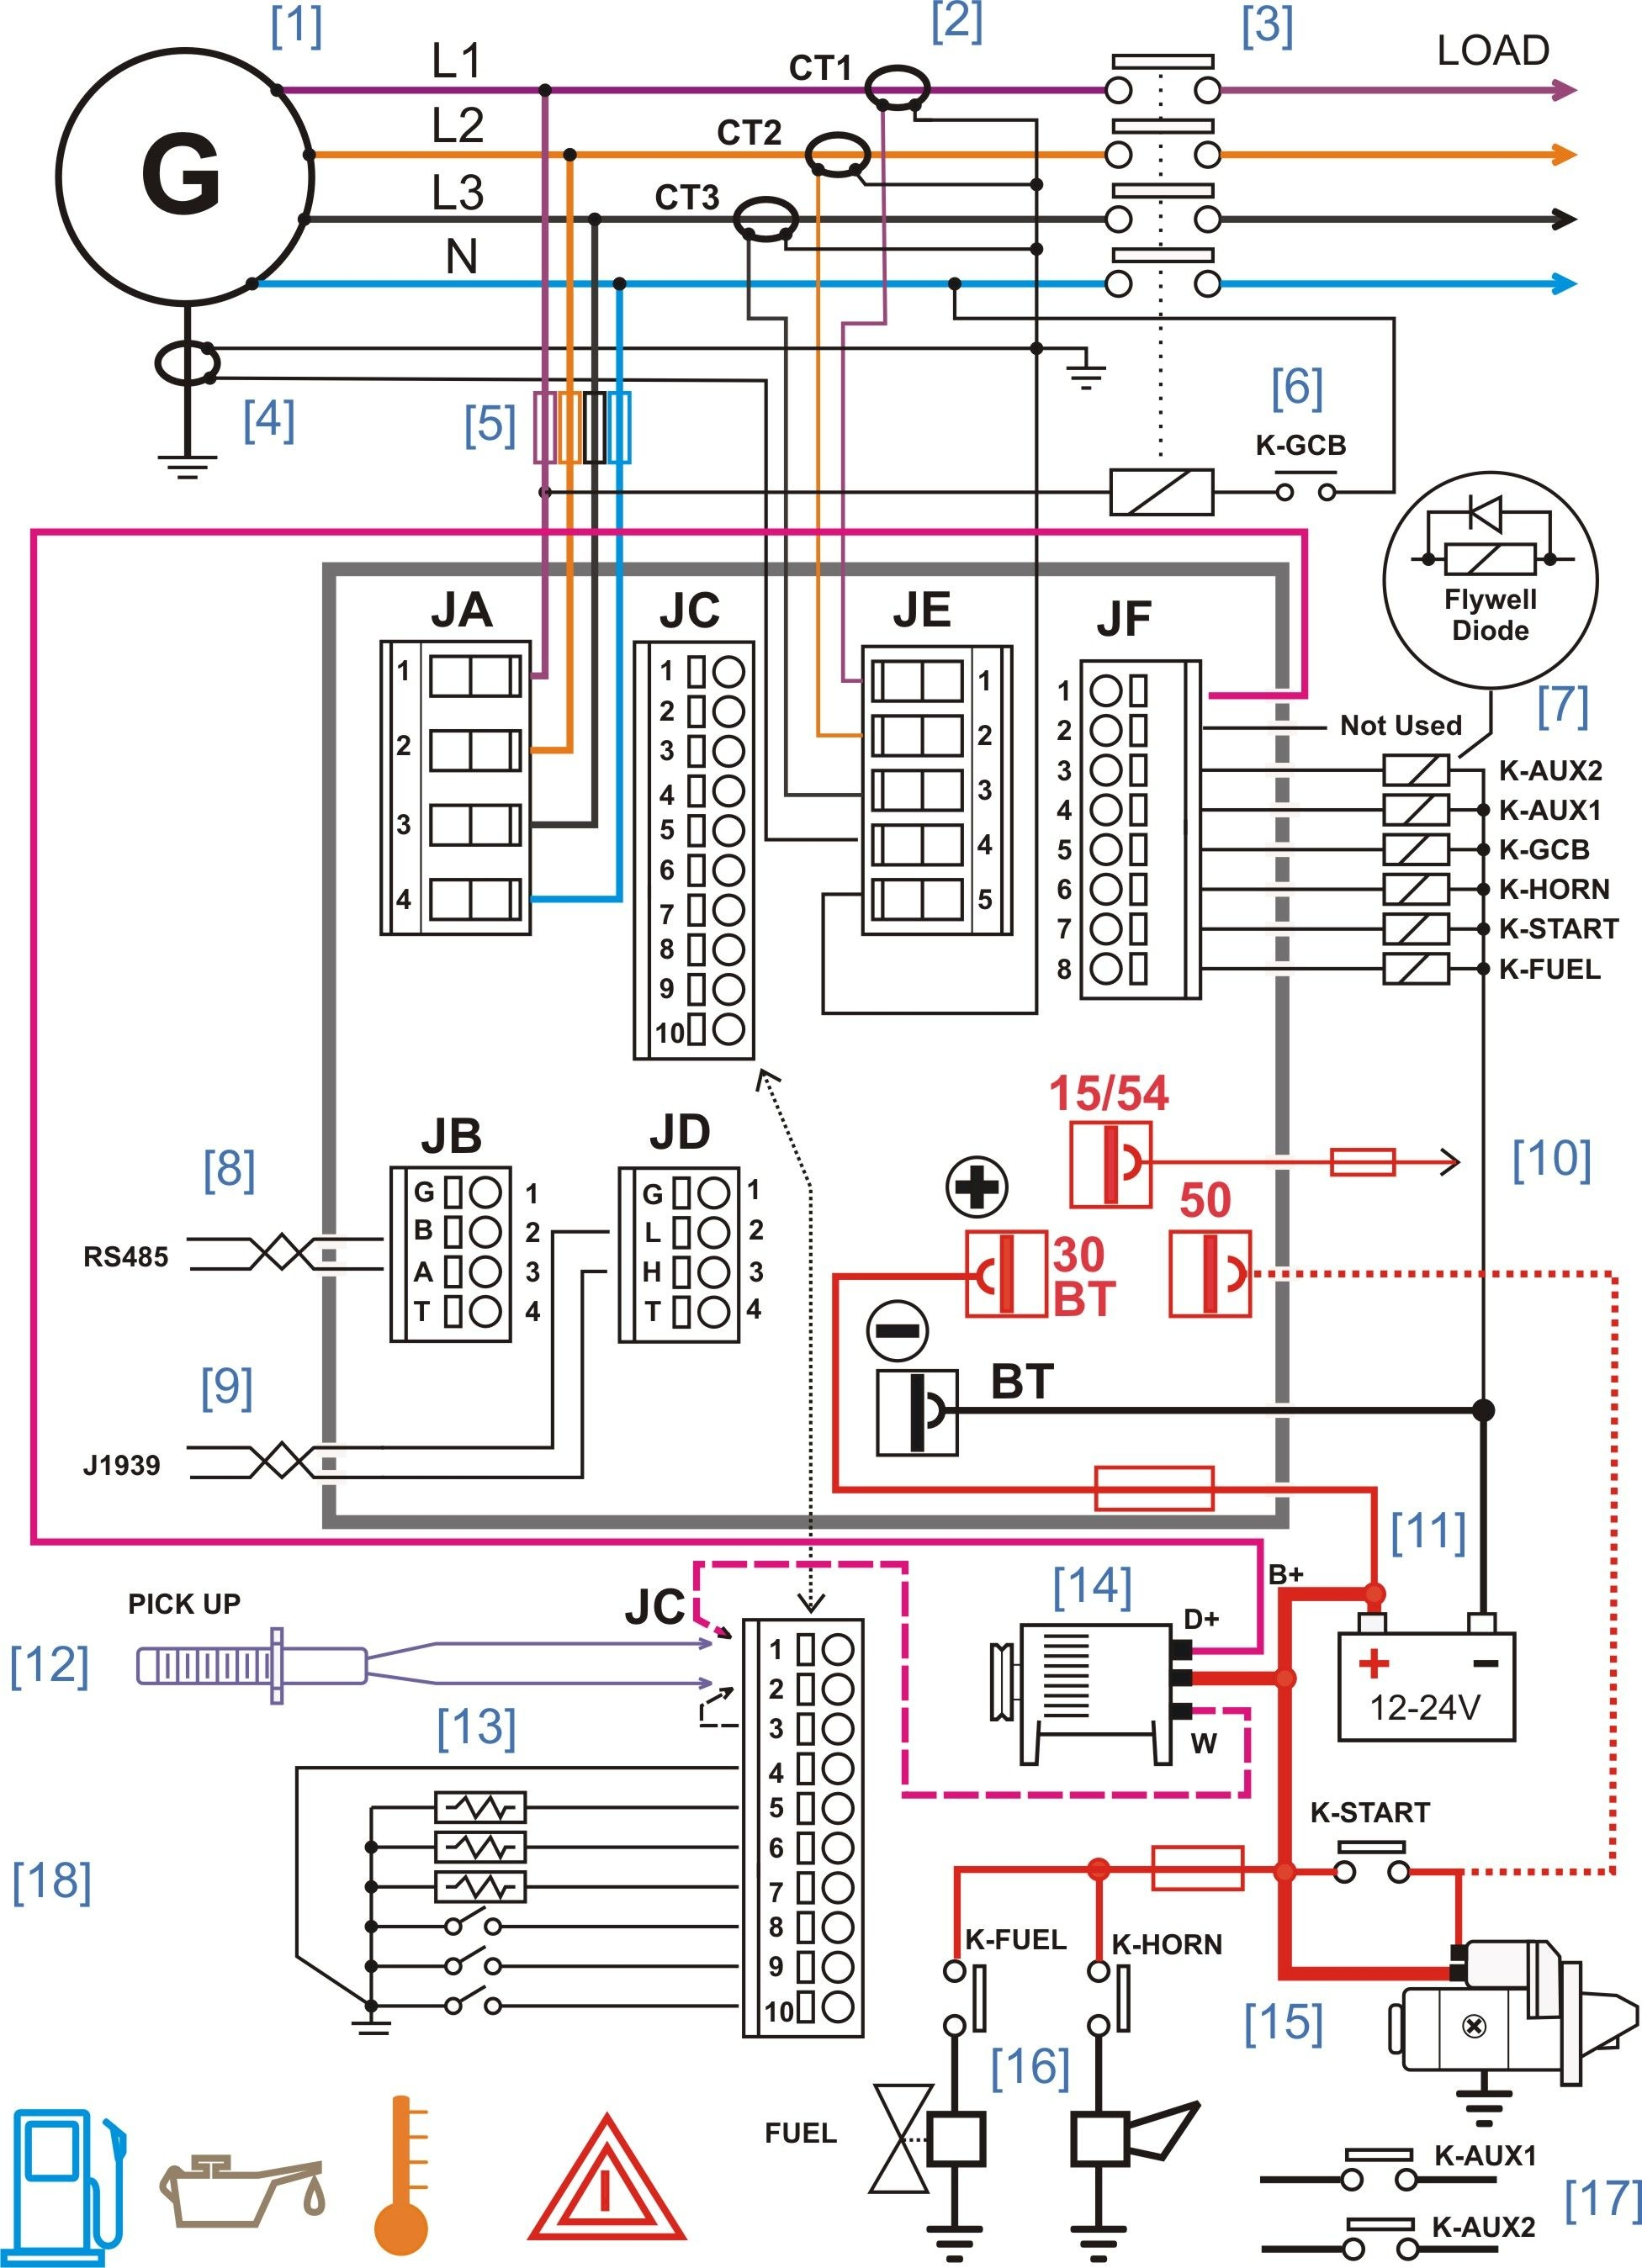 reliance csr302 wiring diagram Collection-Diesel Generator Control Panel Wiring Diagram Changeover Switch Circuit Diagram Elegant Generator Changeover 17-p